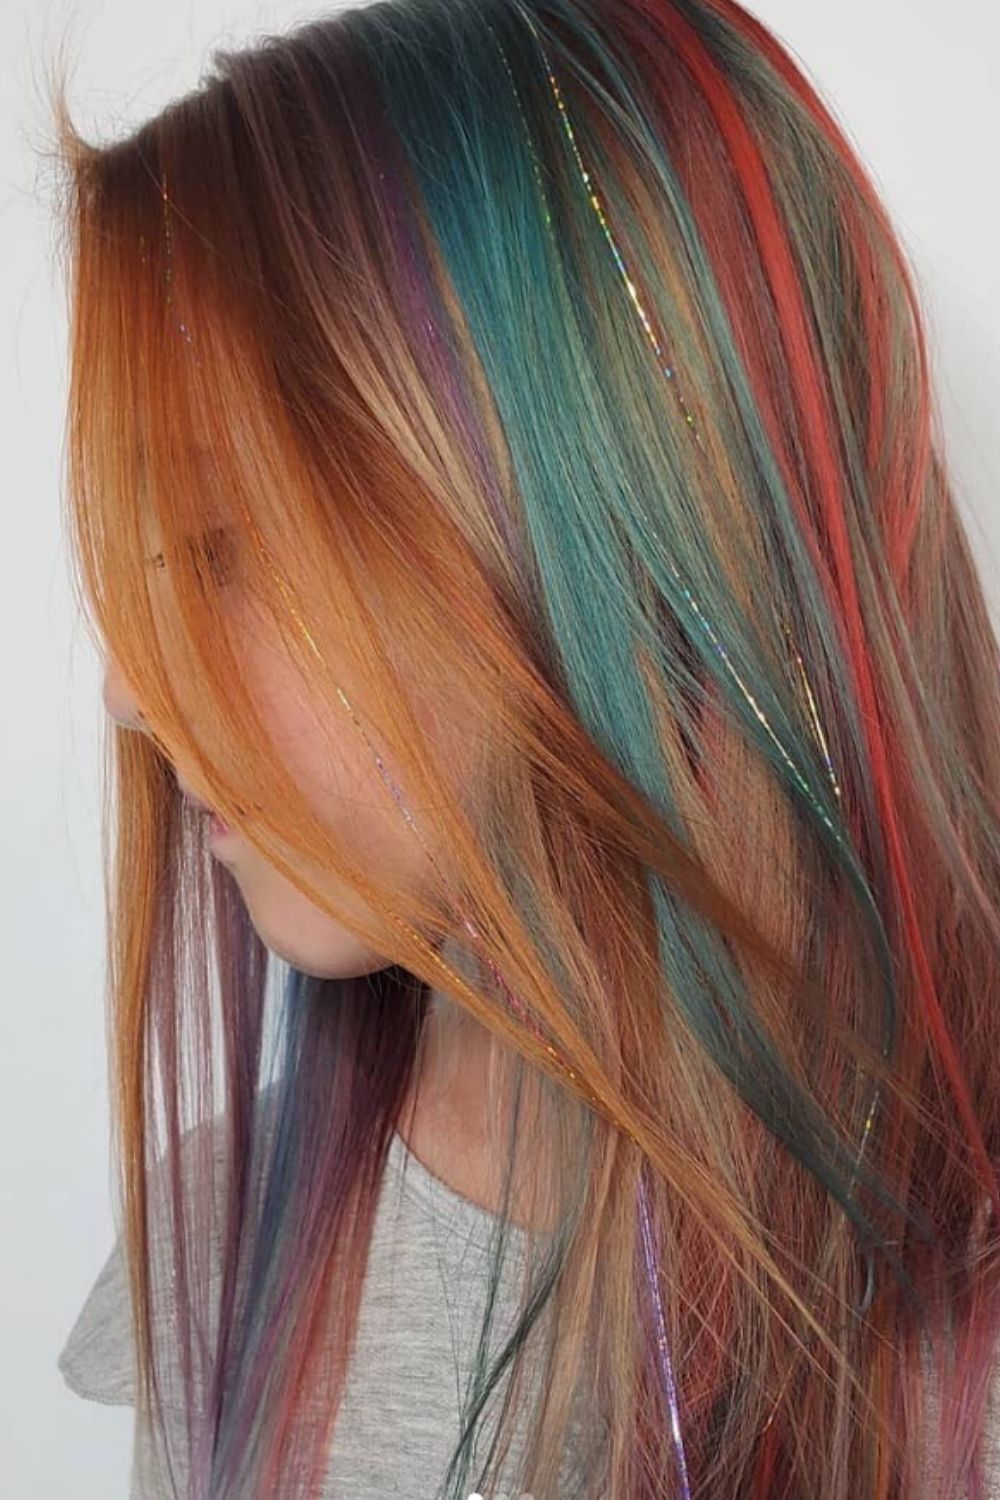 Tinsel hair tutorials: Tips For Glitter Hair To Make Your Hair Sparkly!